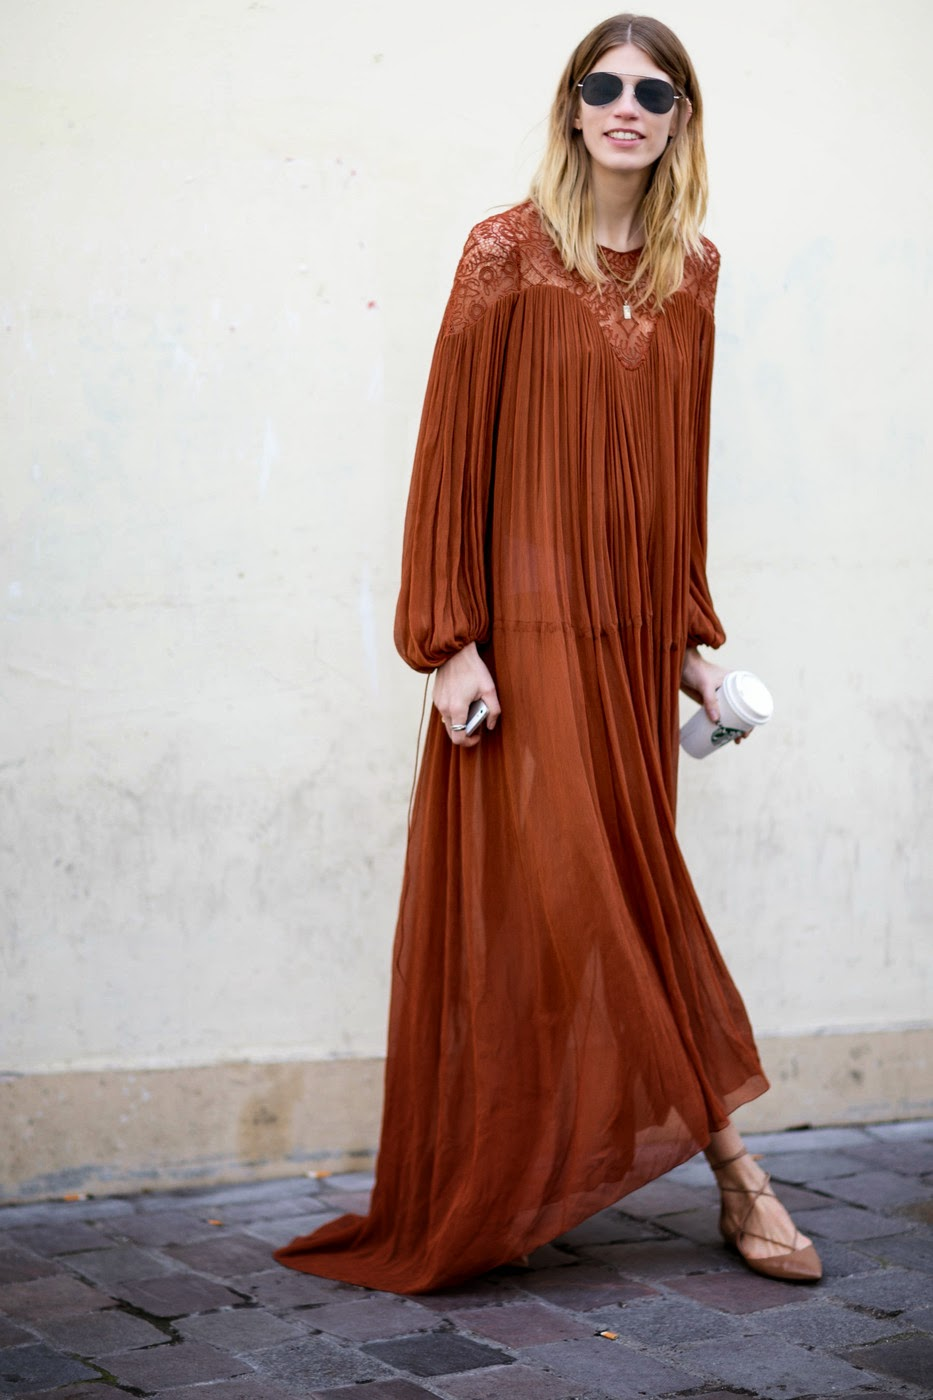 70s Boho Style Inspiration For Summer 2015 The Front Row